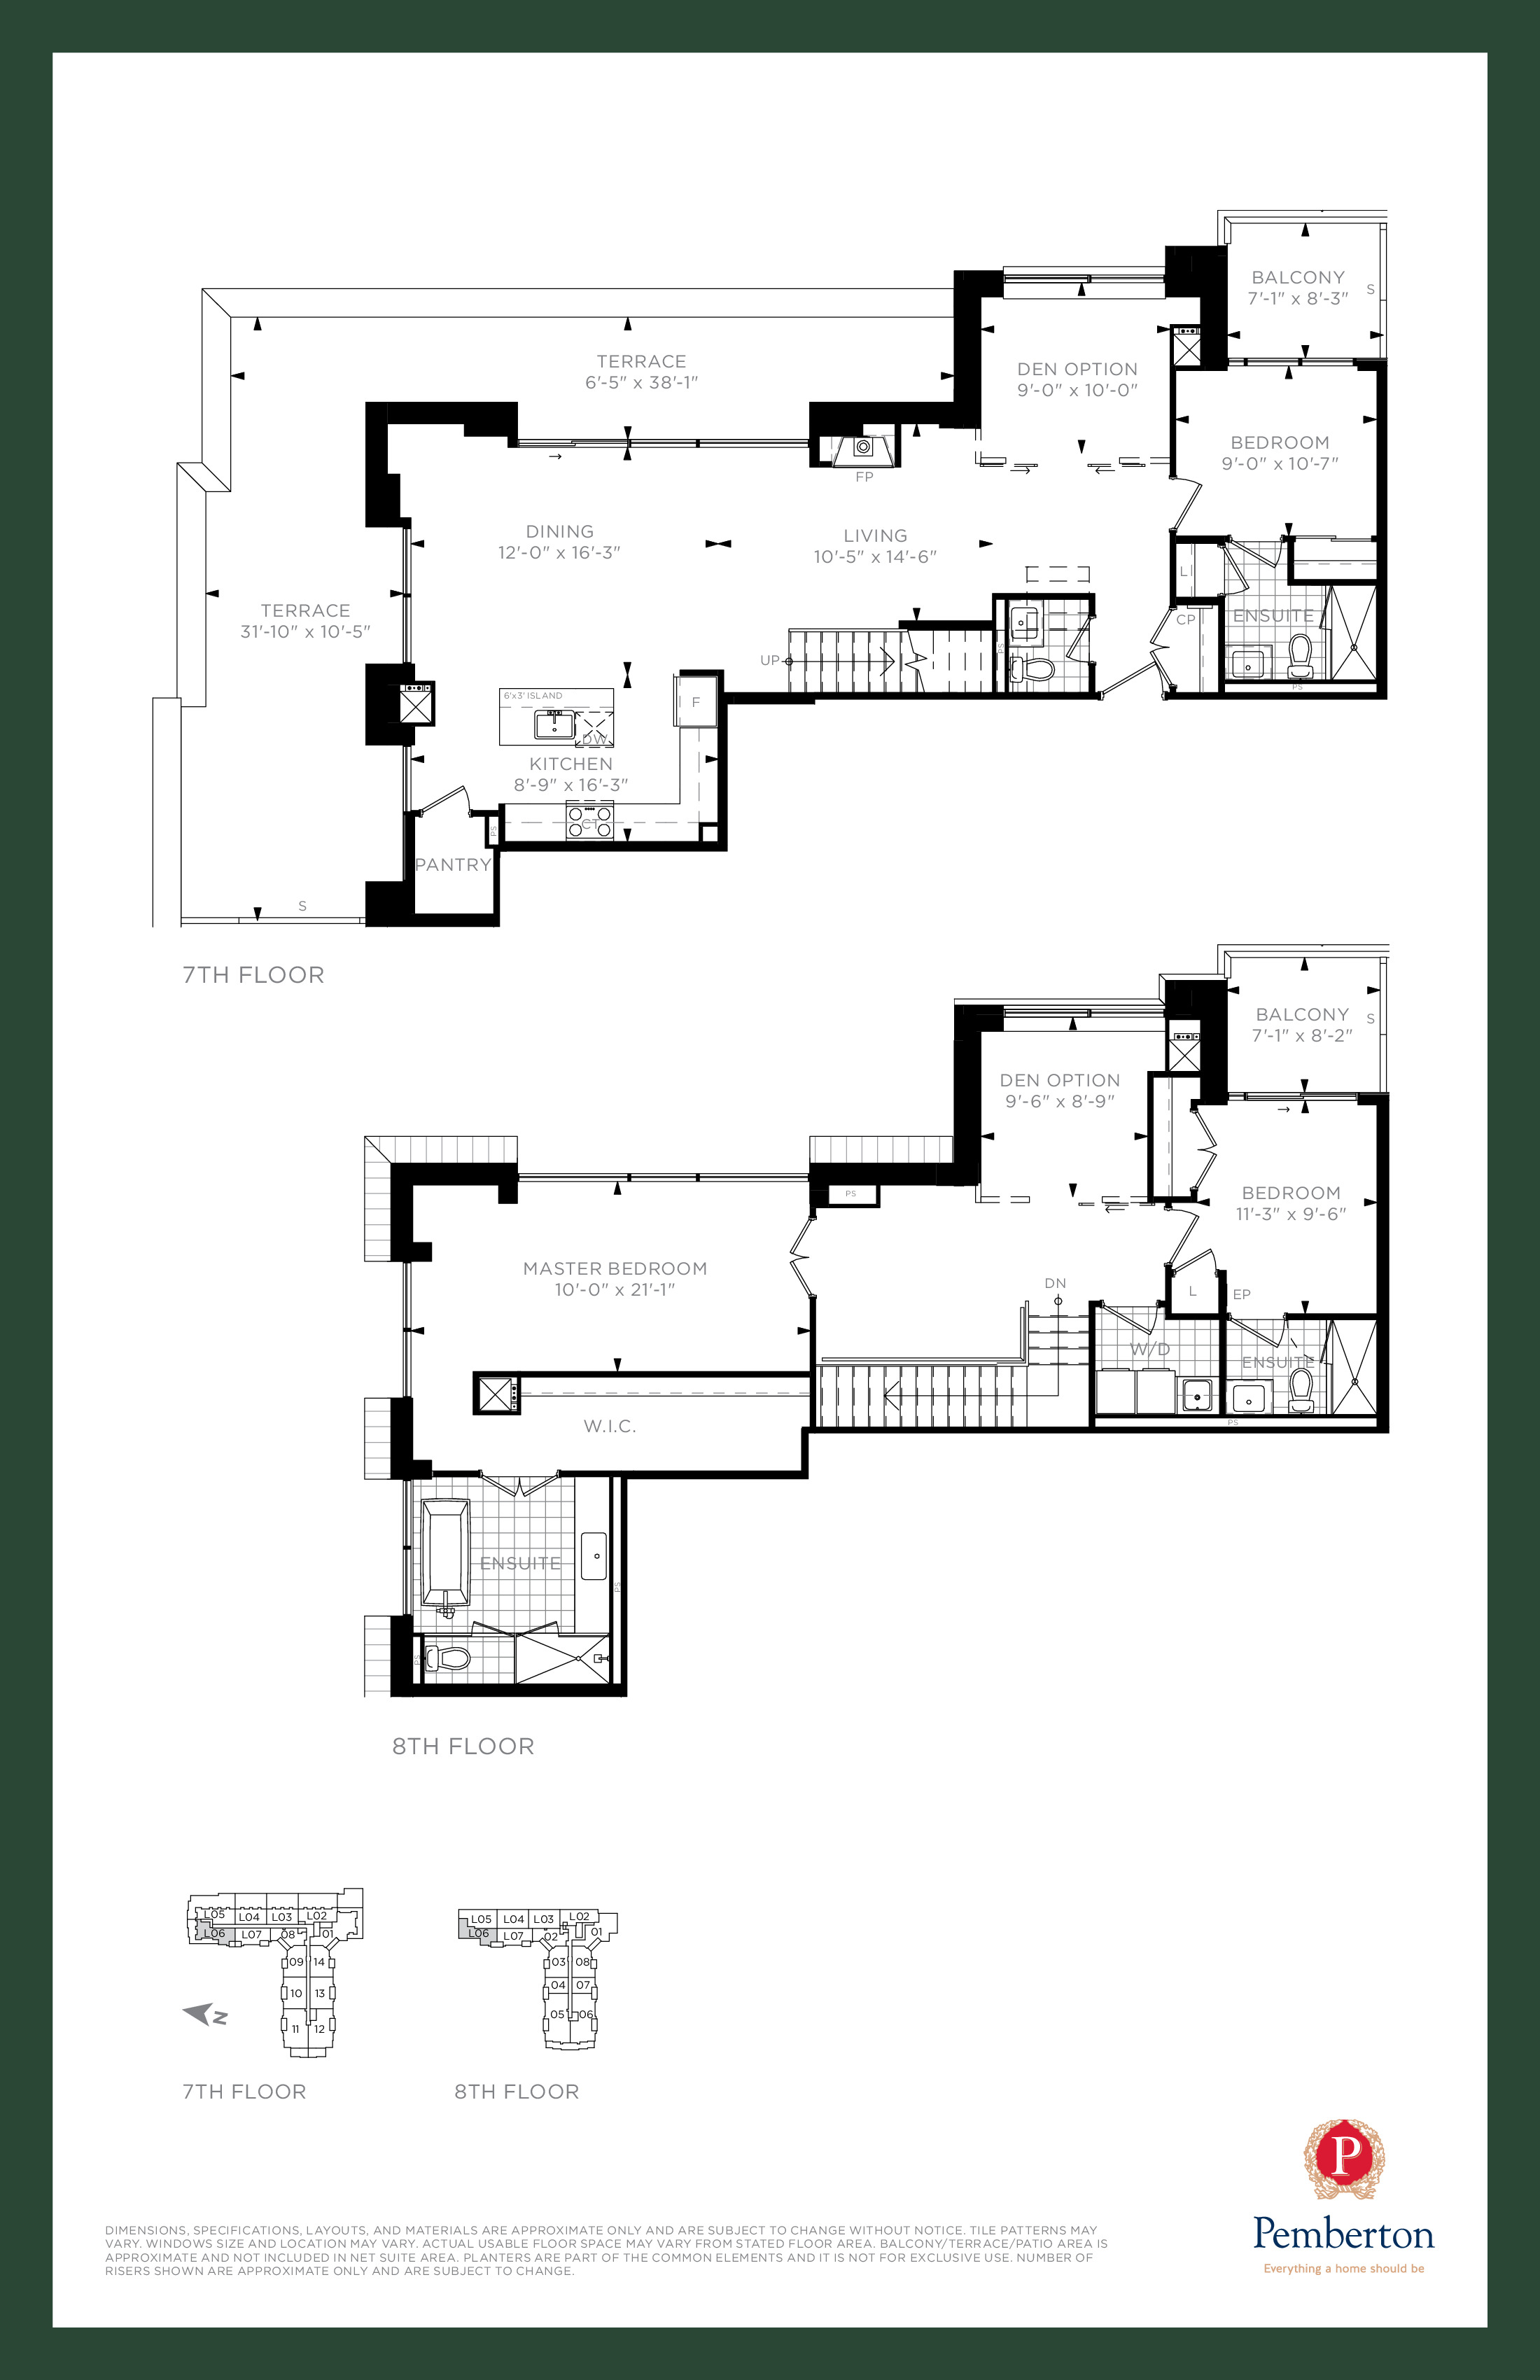 Loft D - Building A Floor Plan at 9th & Main Condos + Towns - 2200 sq.ft